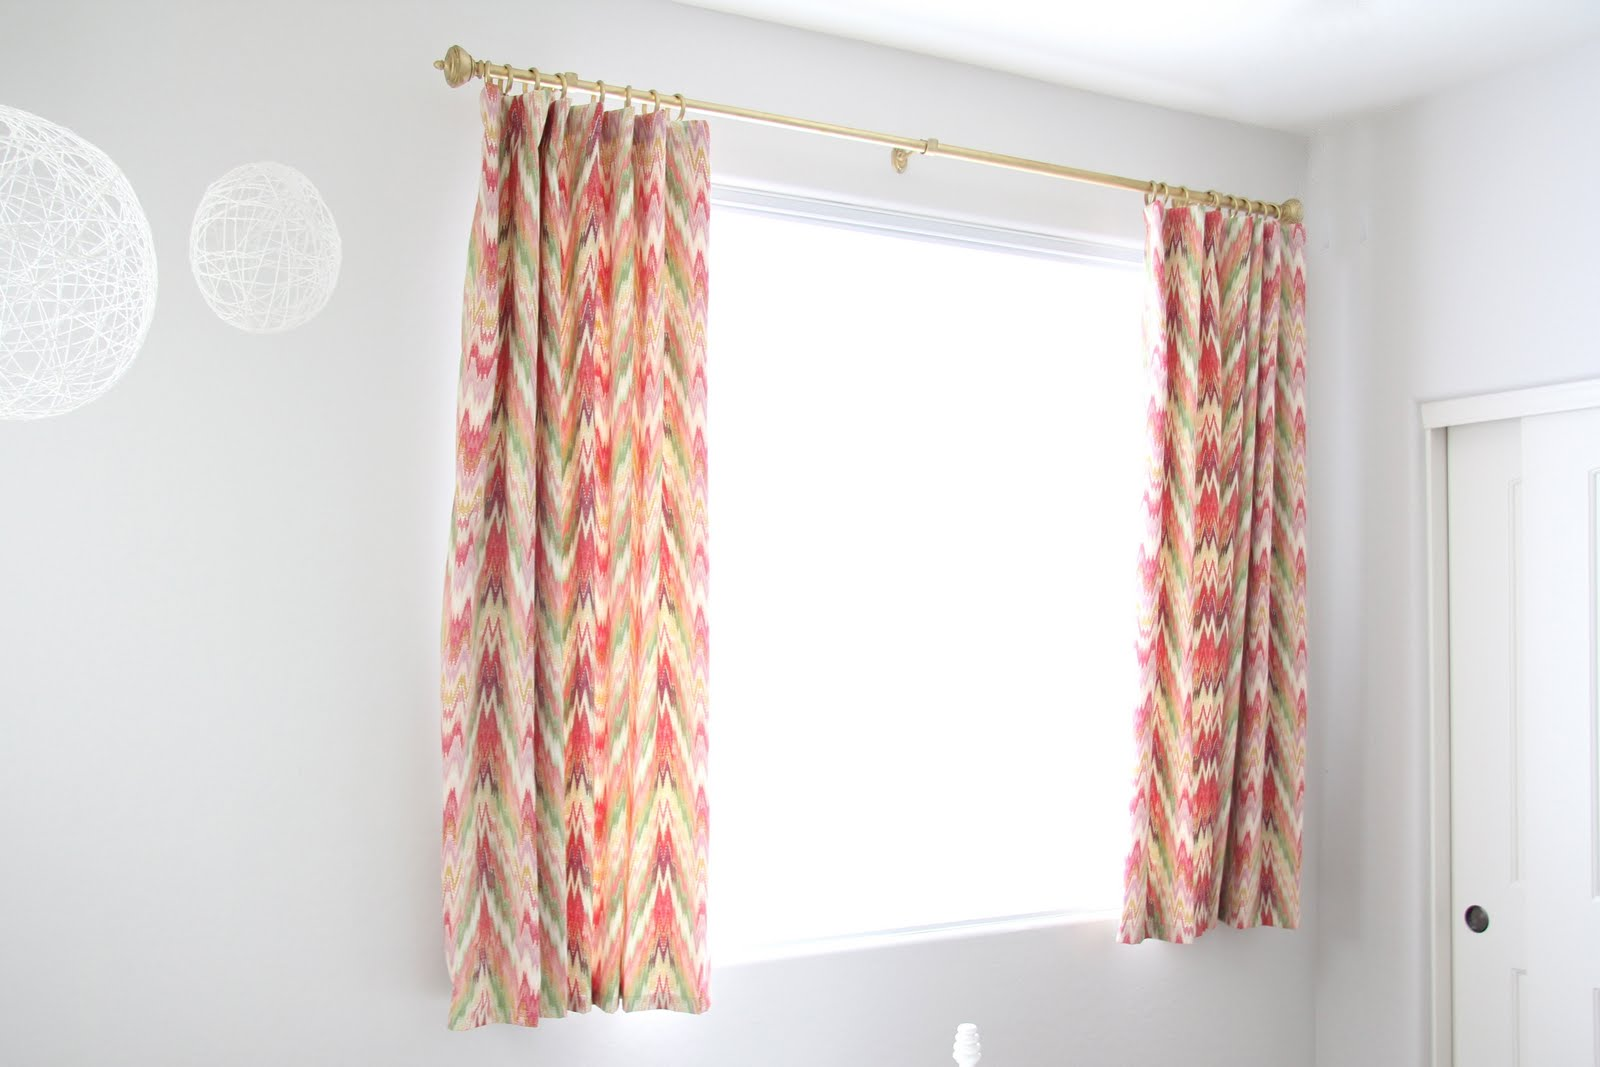 Natty by Design Short Curtains and a Pin Hook Tutorial